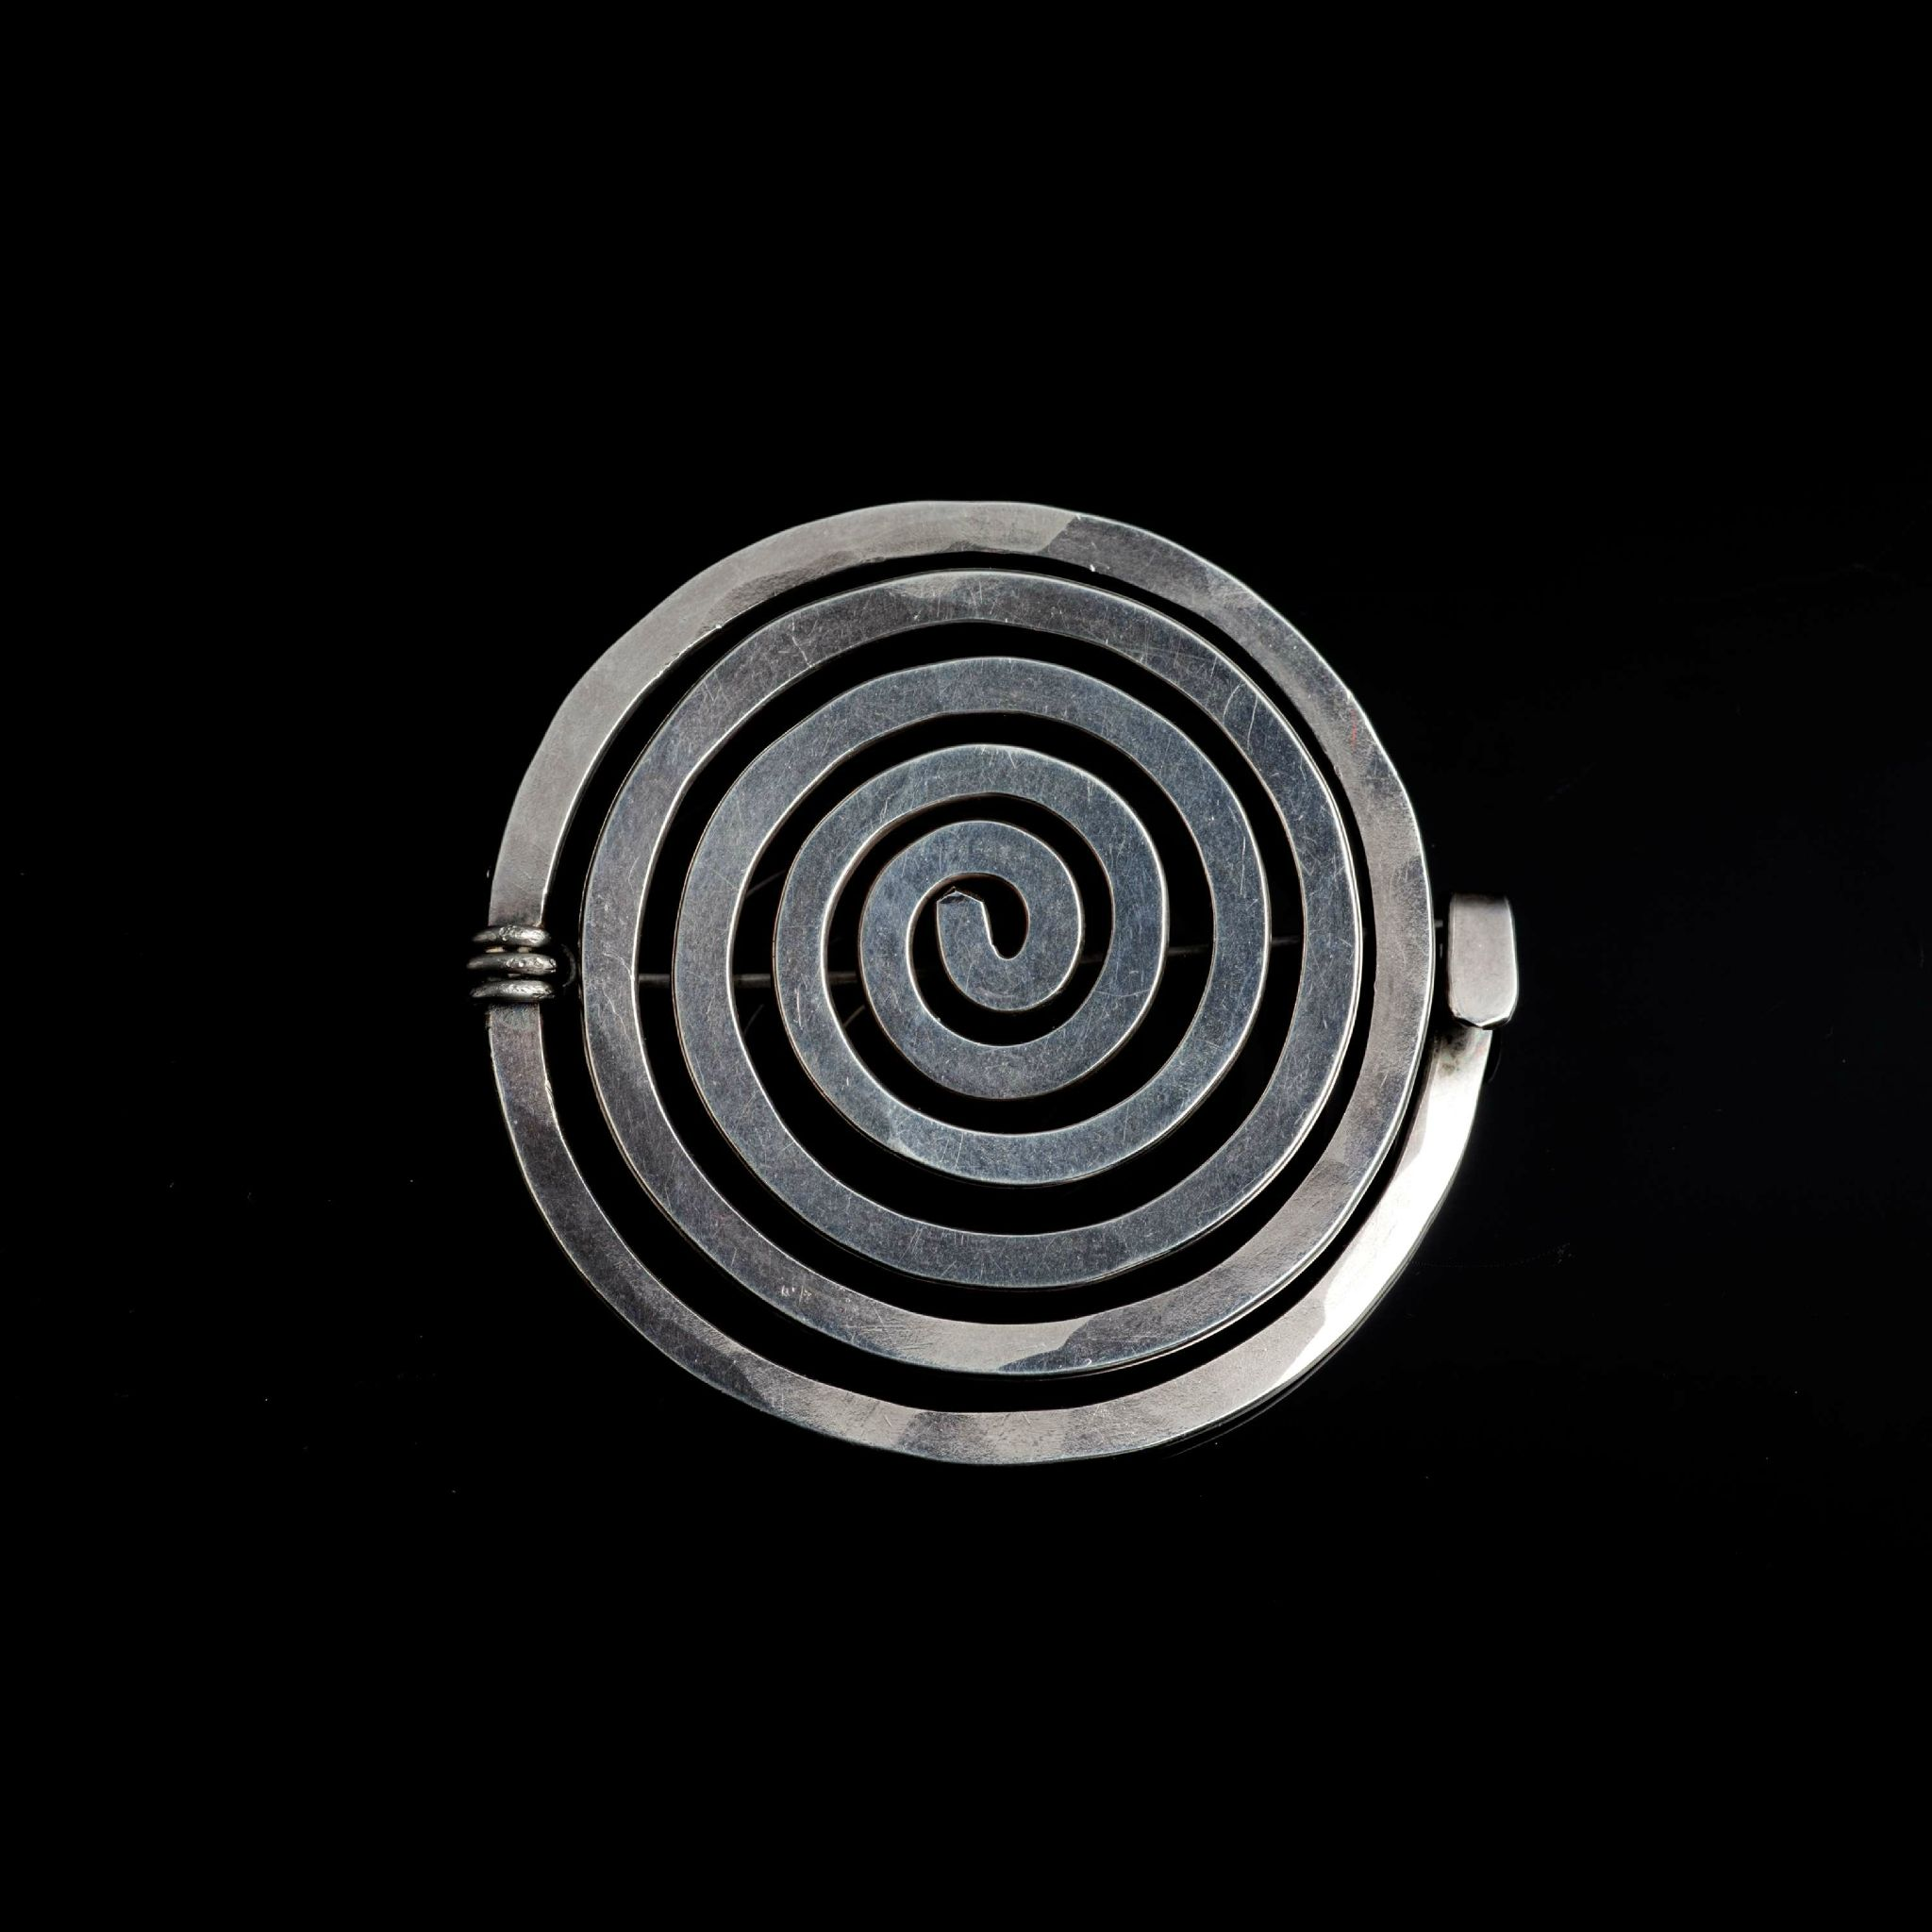 Alexander Calder, Silver Spiral brooch, c. 1932. Didier Ltd at Masterpiece London 2015. Unique sterling silver brooch in the form of a spiral with a steel fastening prong.